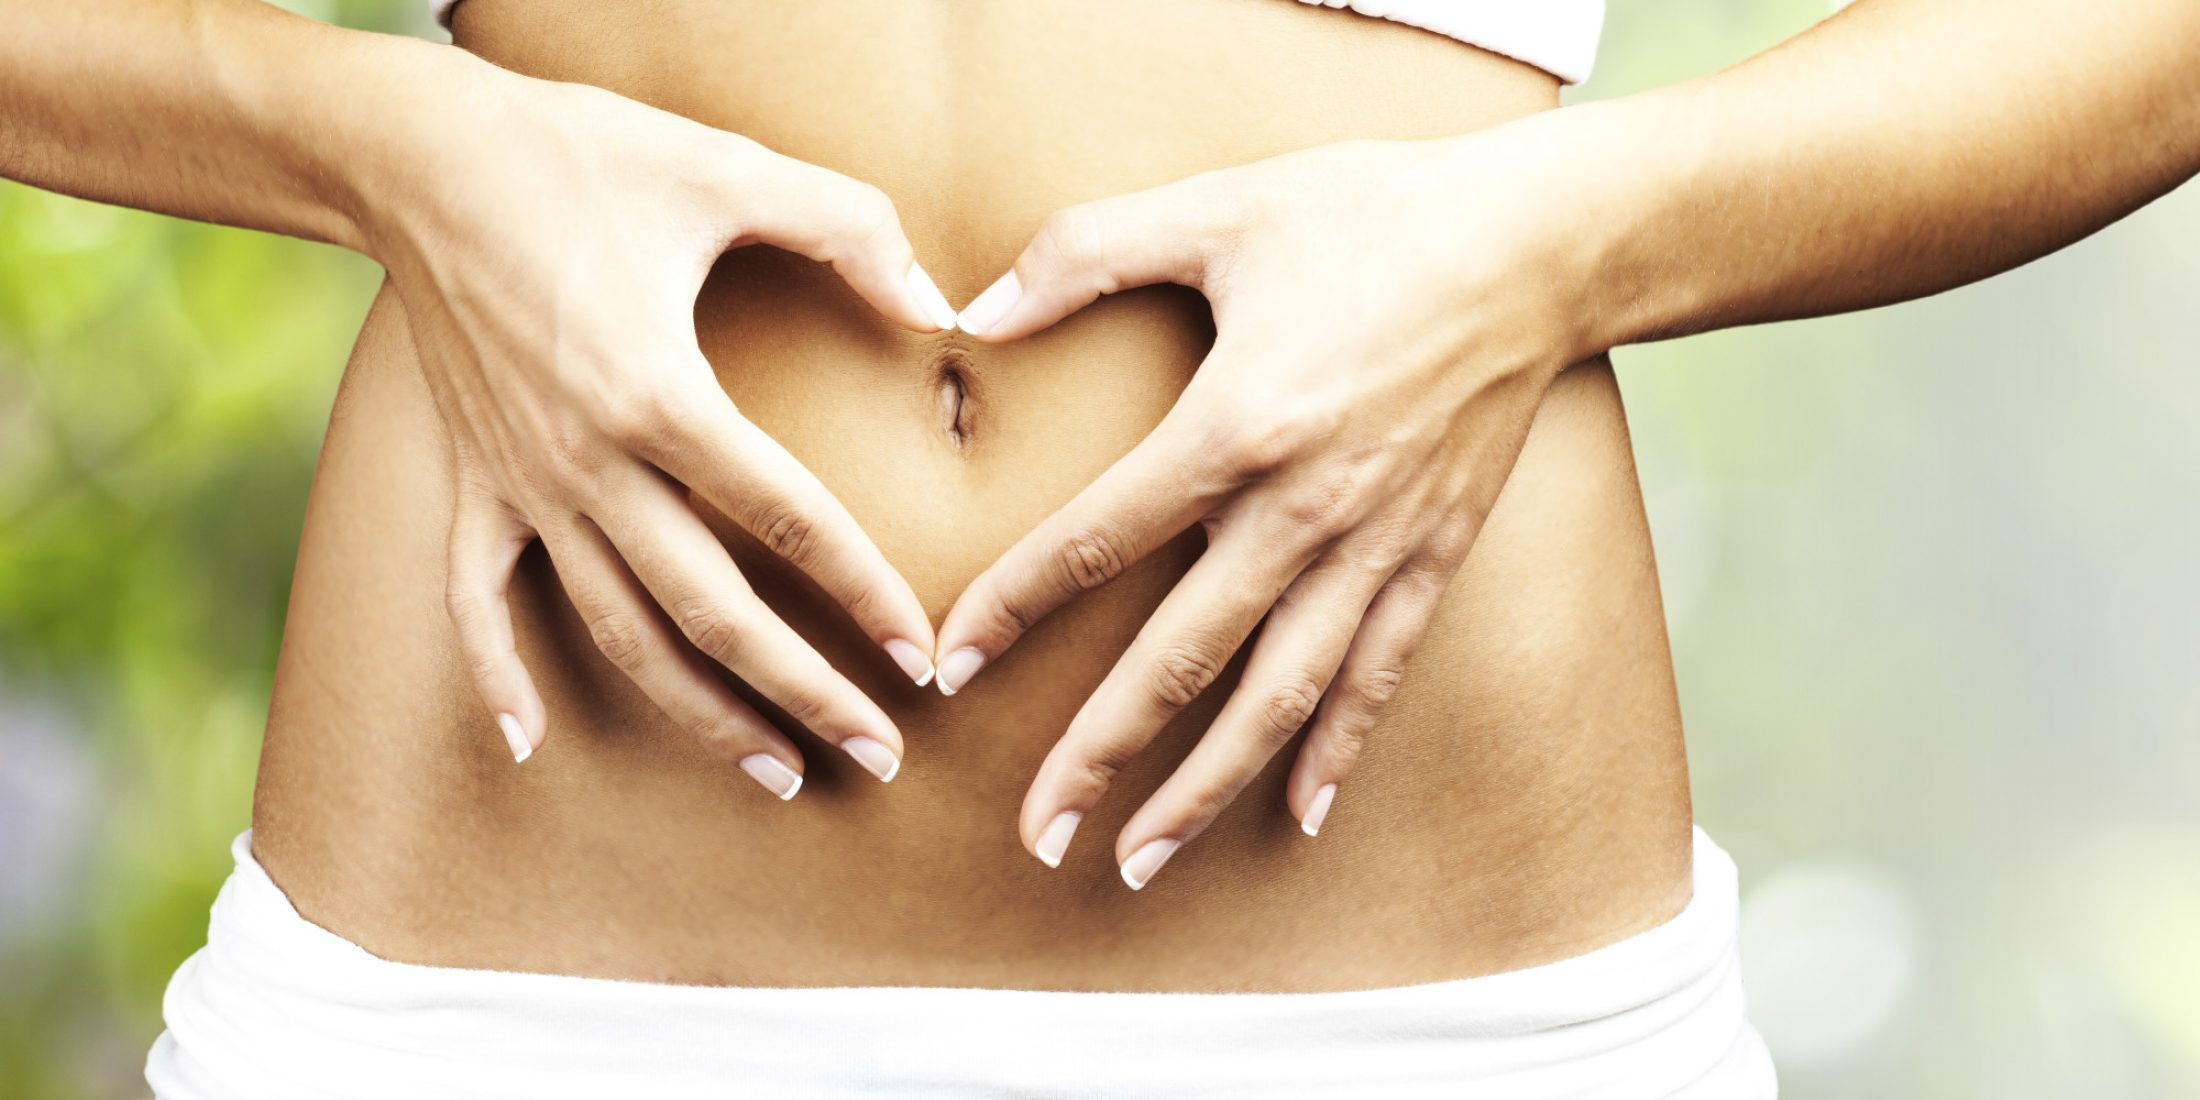 What To Expect From Your Colonic Irrigation Appointment